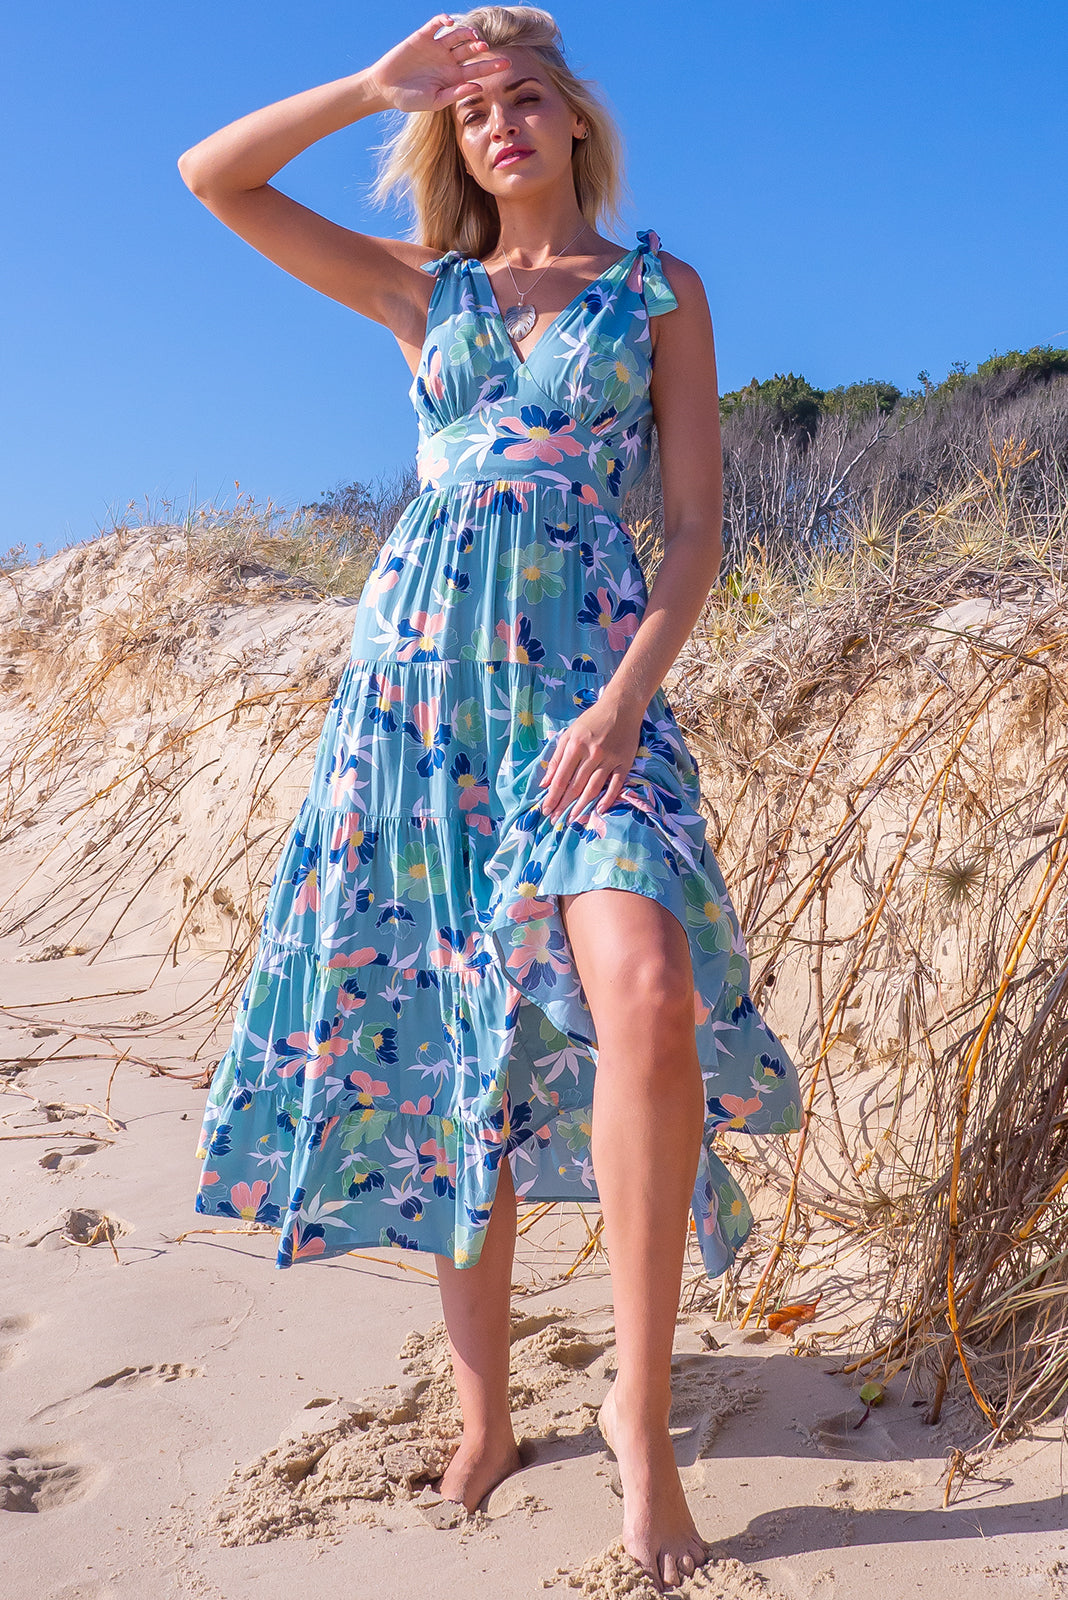 The Isla Aqua Waves Maxi Dress is ideal summer frock for cheeky weekend getaways  featuring adjustable shoulder ties, flattering front basque waist, side pockets, tiered, full skirt and 100% viscose in soft green/blue base with bold floral print.